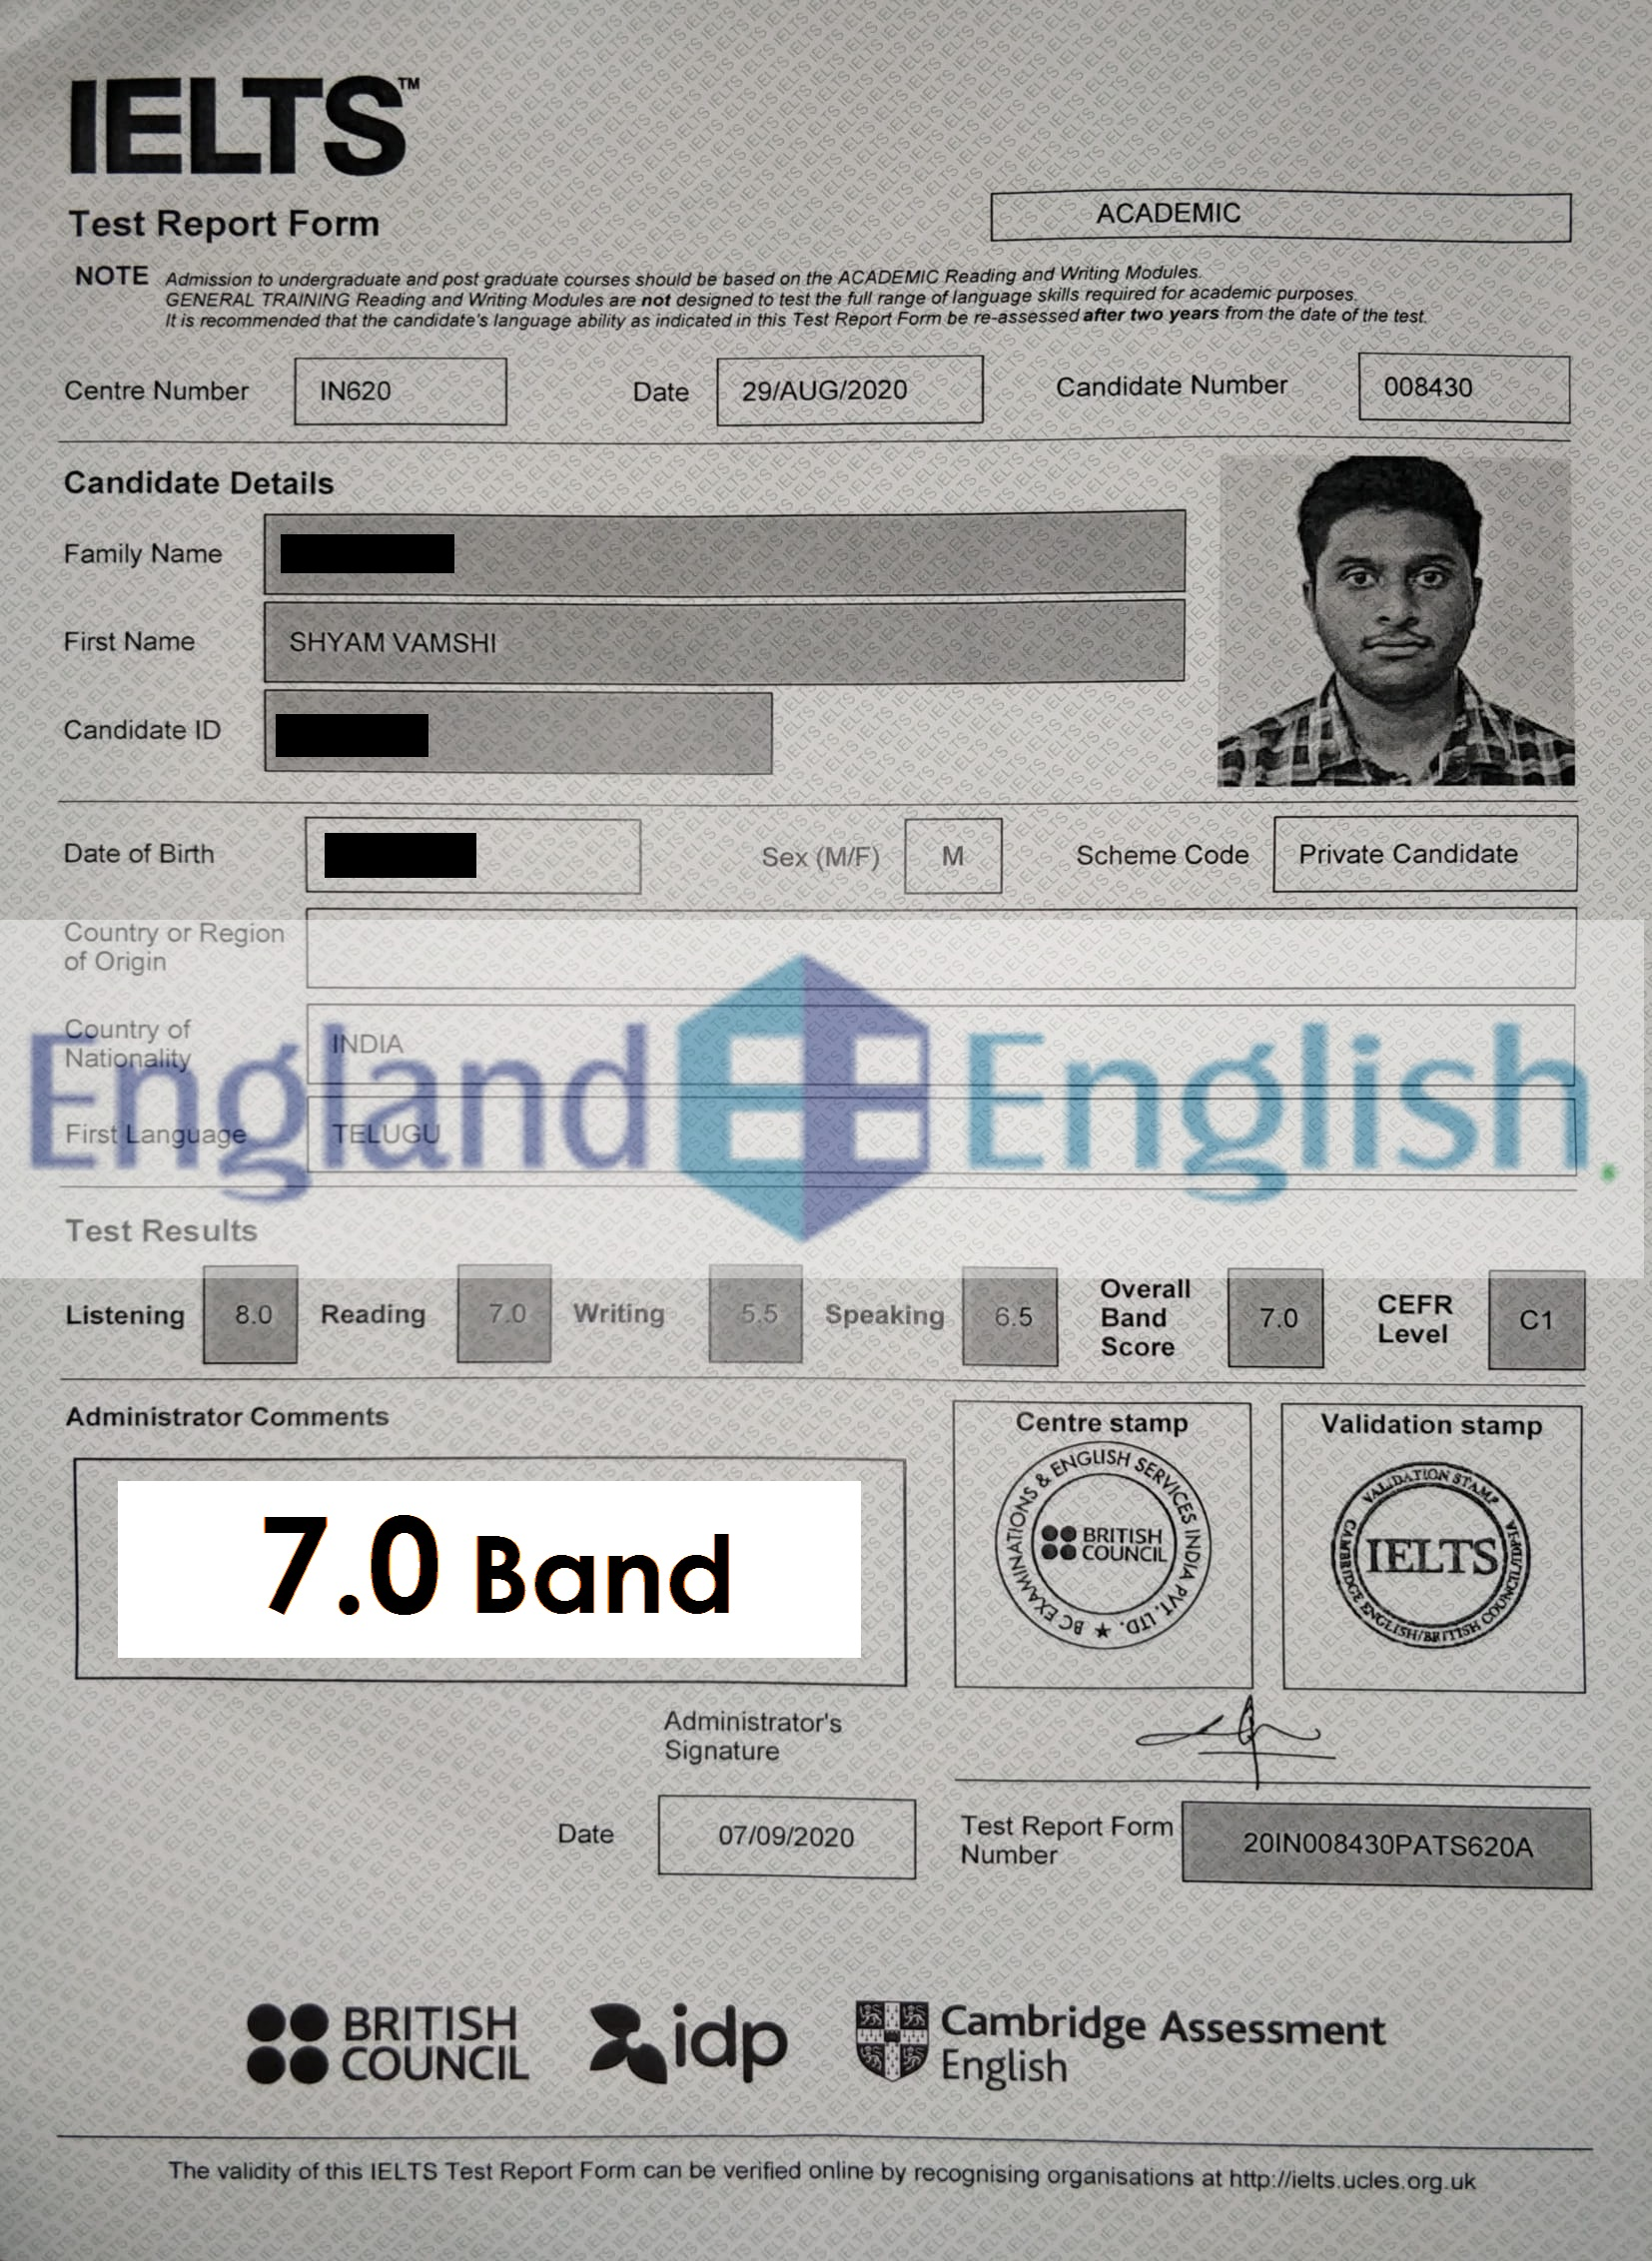 Best IELTS coaching center in Hyderabad, England English.